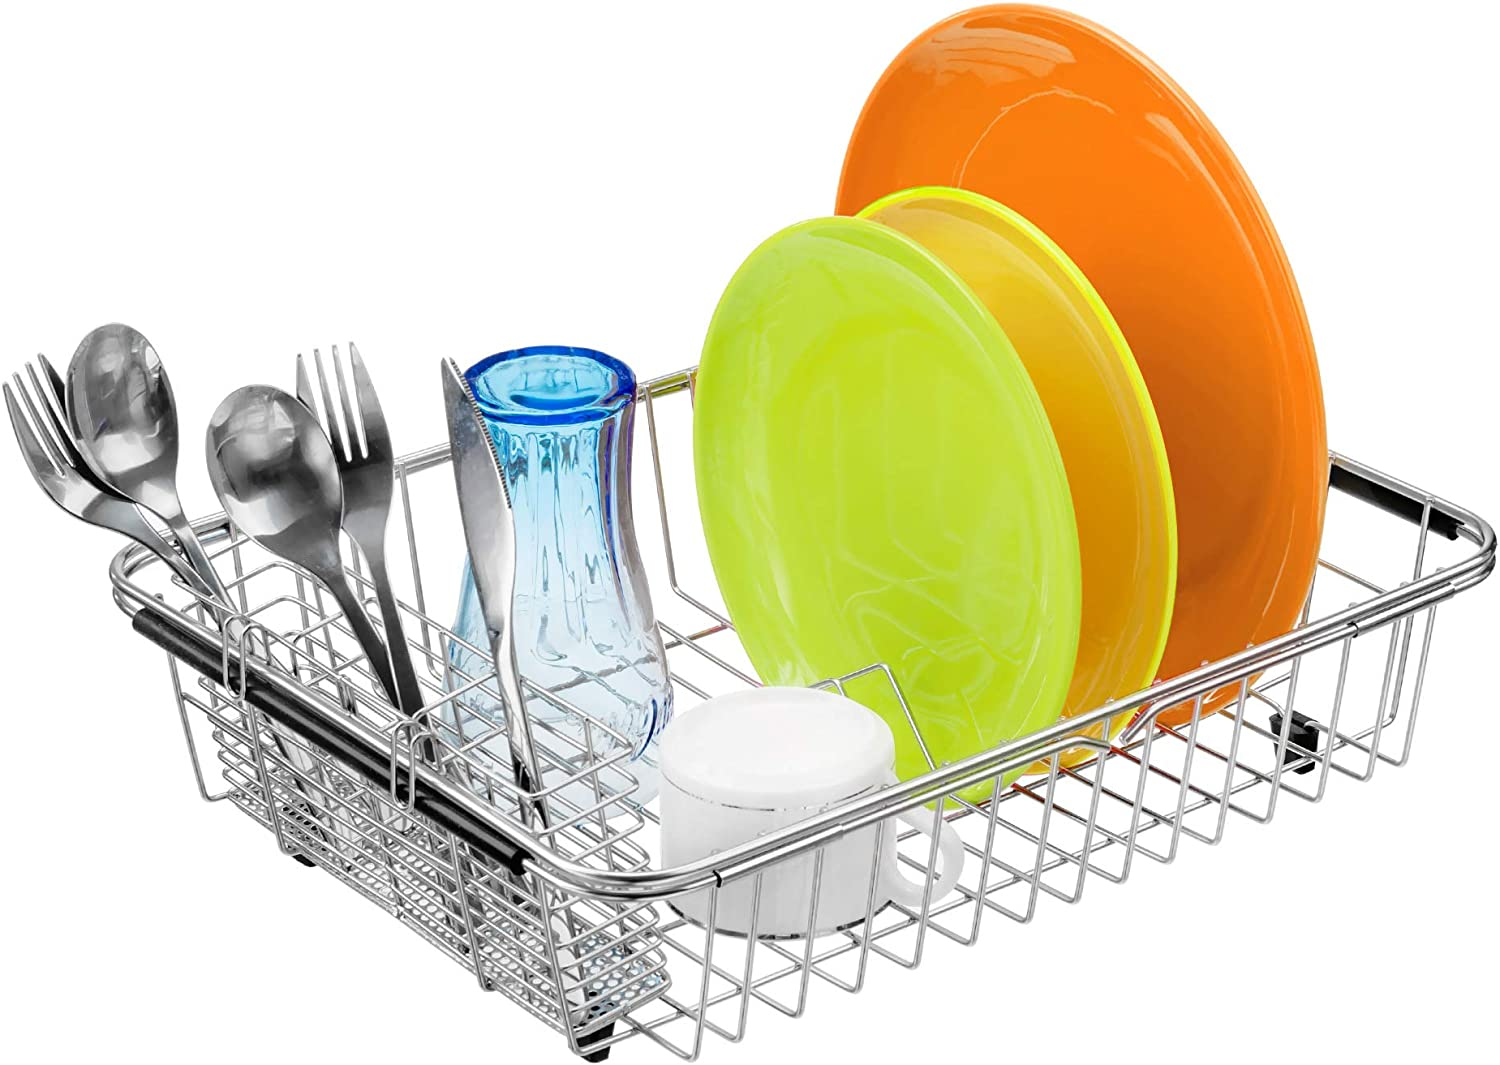 MONOKIT Dish Drying Rack in Sink, Expandable Dish Drainers Rack for kitchen sink with Utensil Holder Stainless Steel